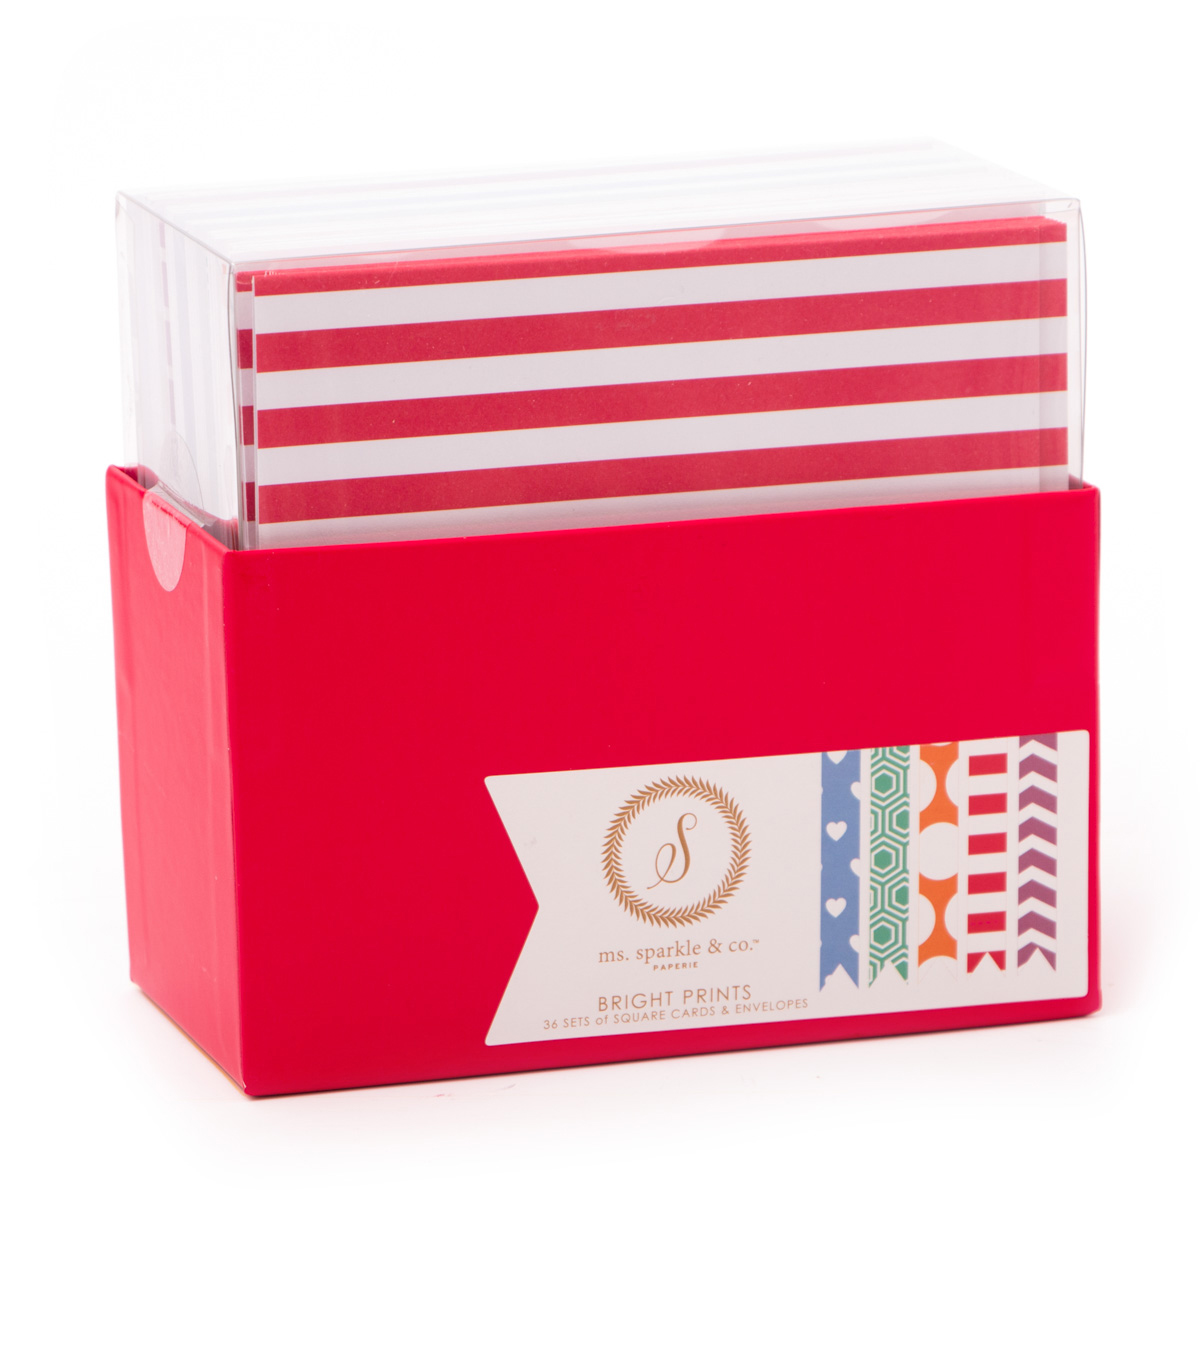 Ms. Sparkle & Co. Square Cards & Envelopes-Bright Prints